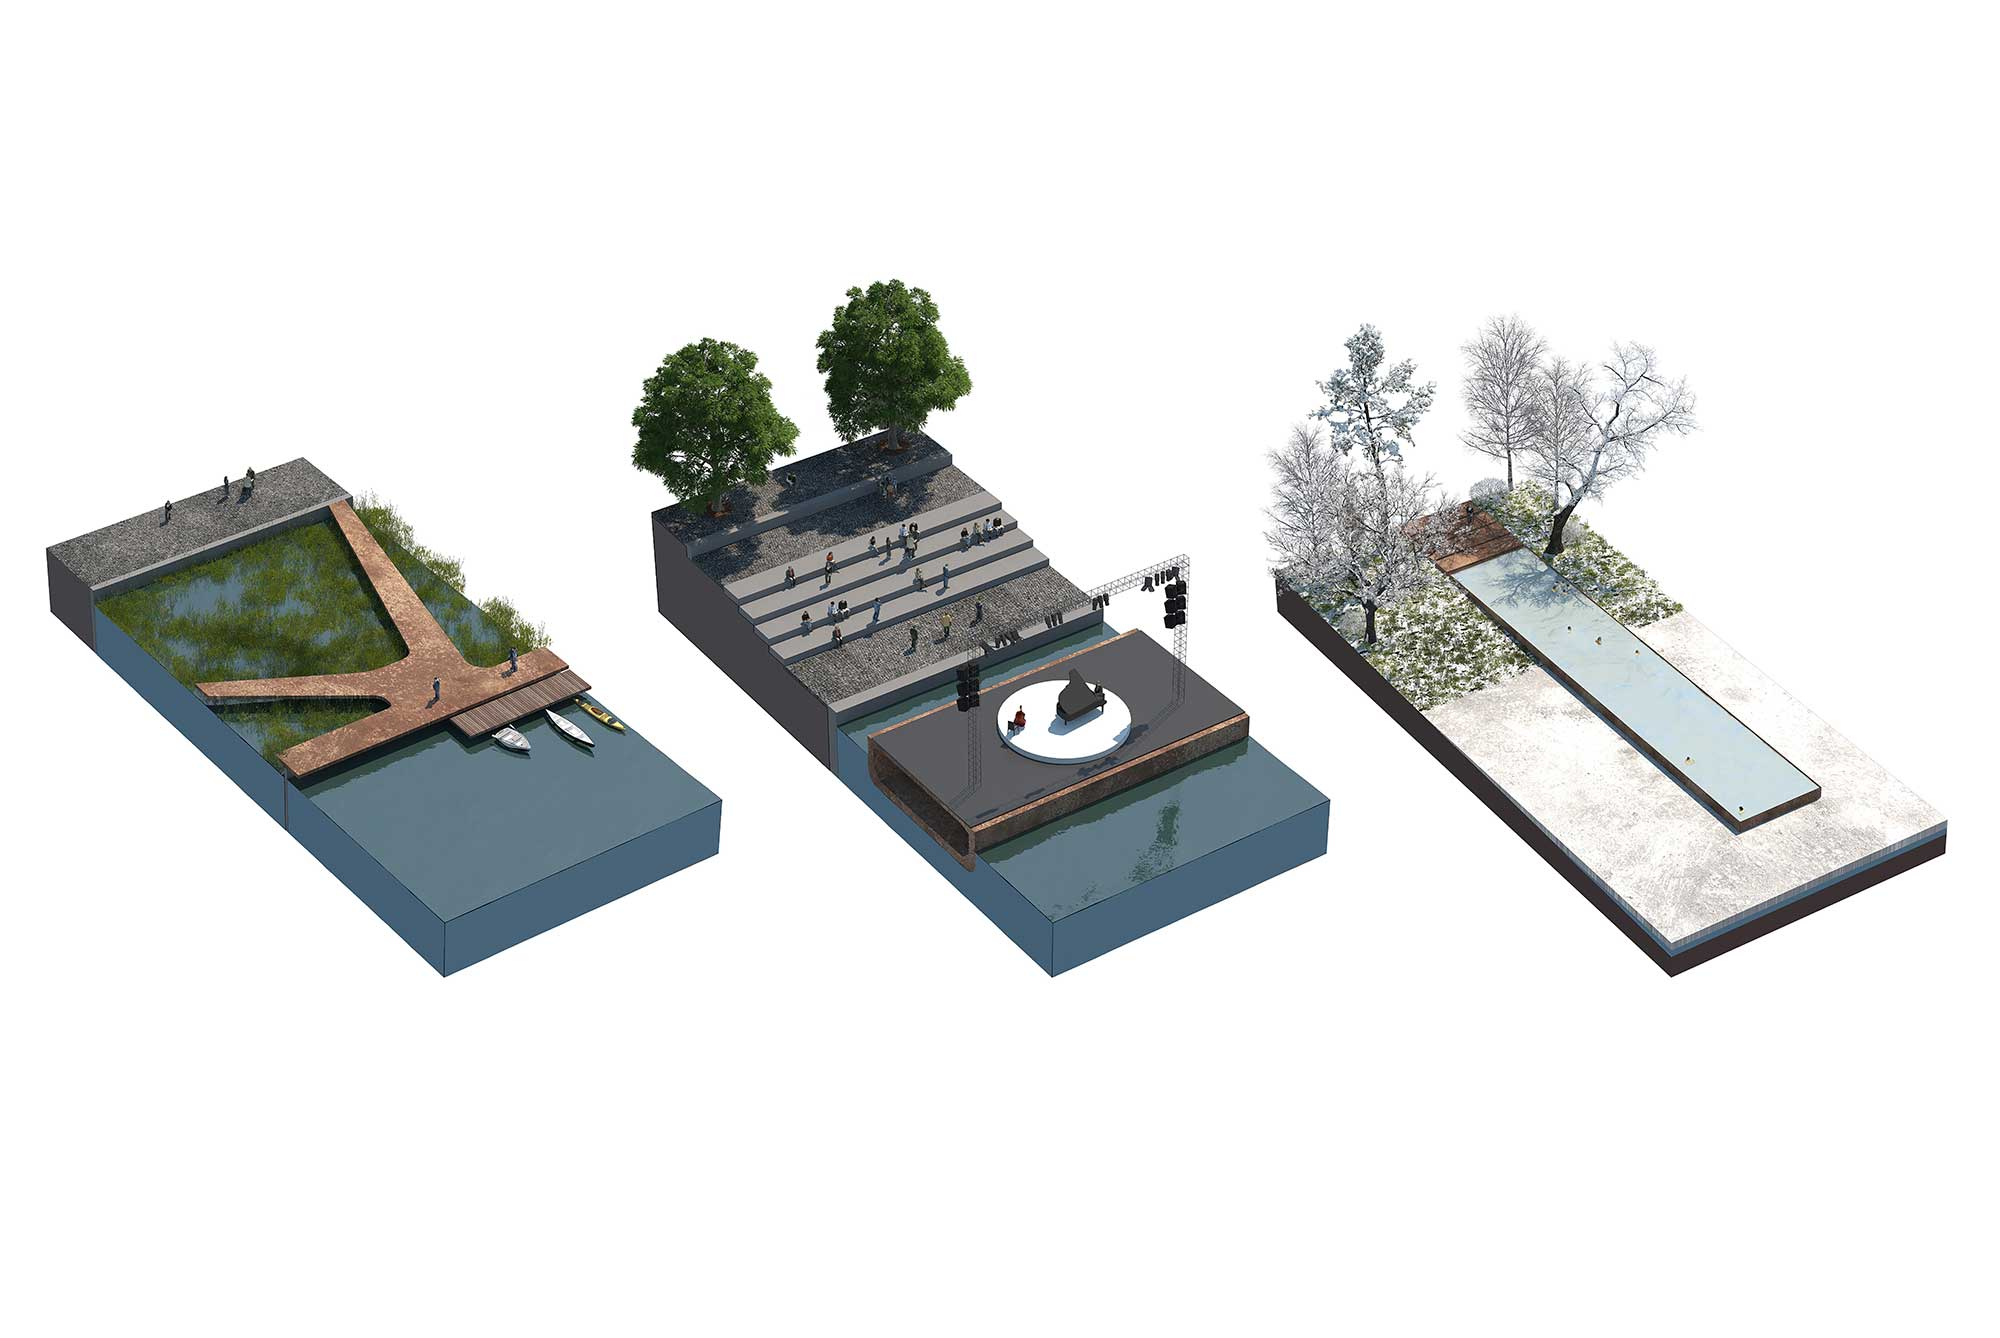 Embankment sections: residential, downtown, recreational